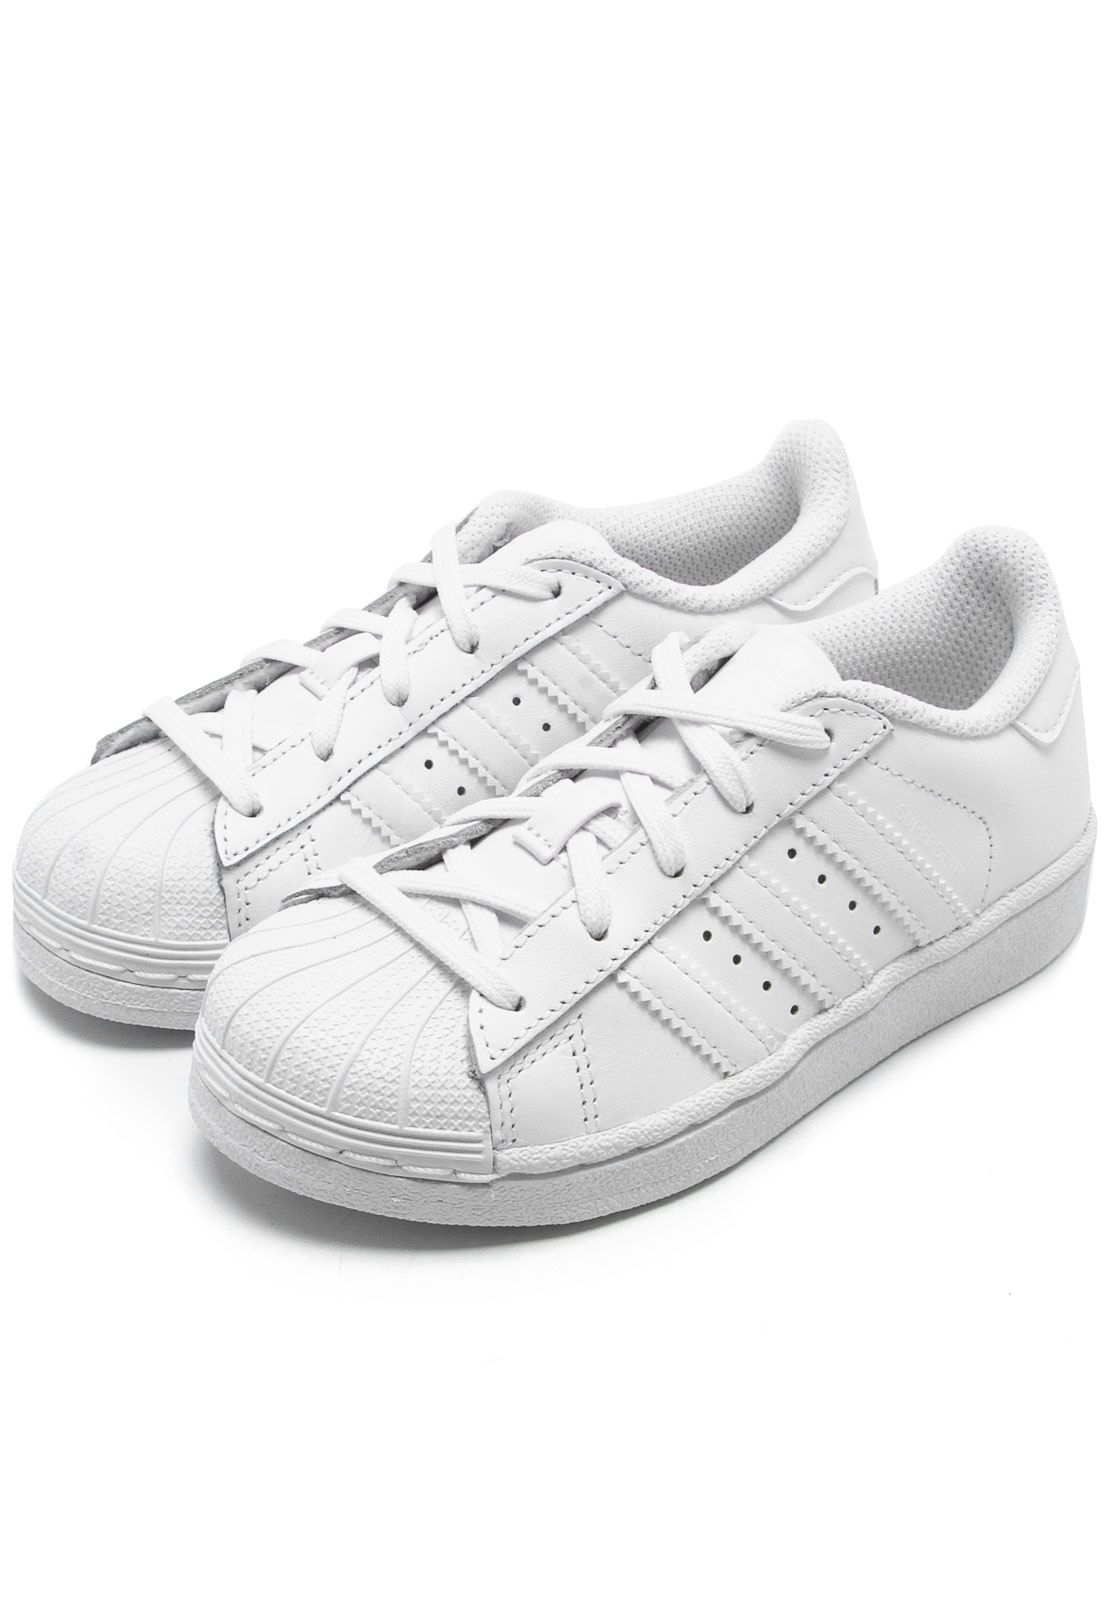 Tênis adidas Superstar Branco | Tenis adidas superstar